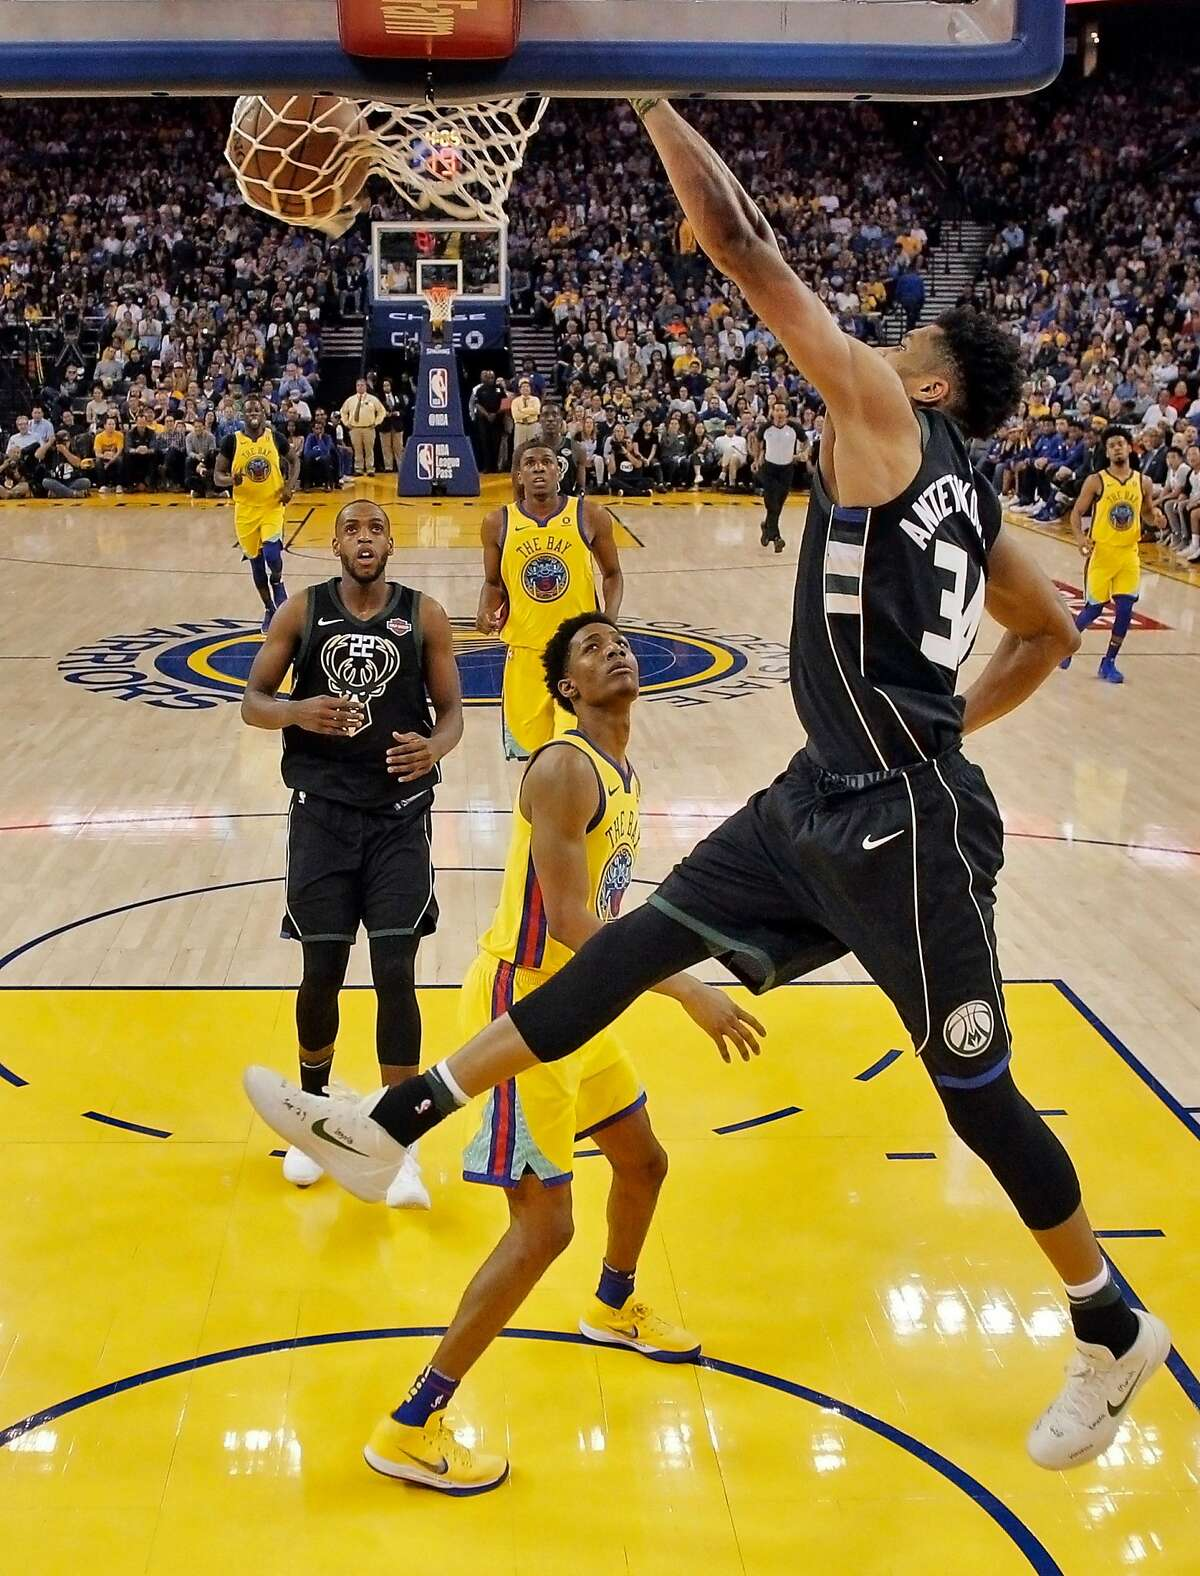 Giannis Antetokounmpo (34) dunks in the first half as the Golden State Warriors played the Milwaukee Bucks at Oracle Arena in Oakland, Calif., on Thursday, March 29, 2018.